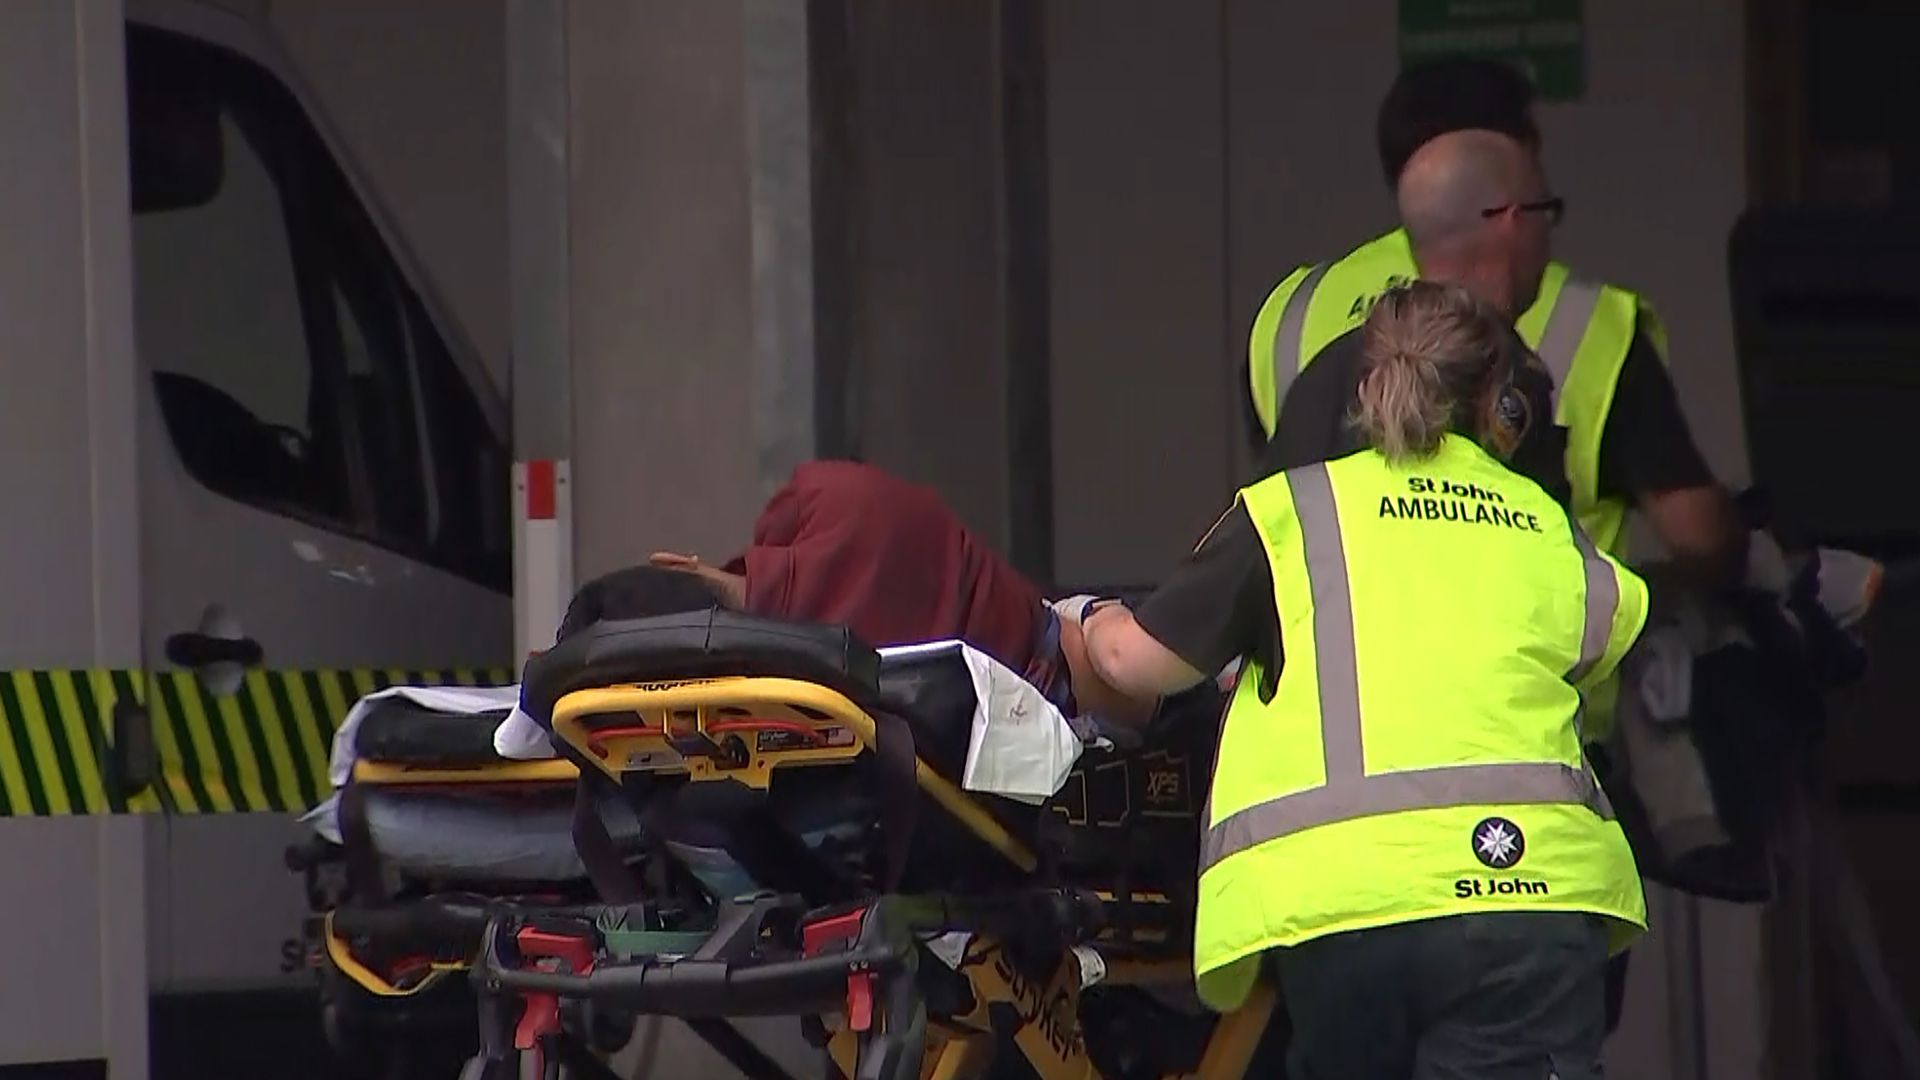 New Zealand emergency services responded to multiple casualties in the Christchurch mosque attacks.